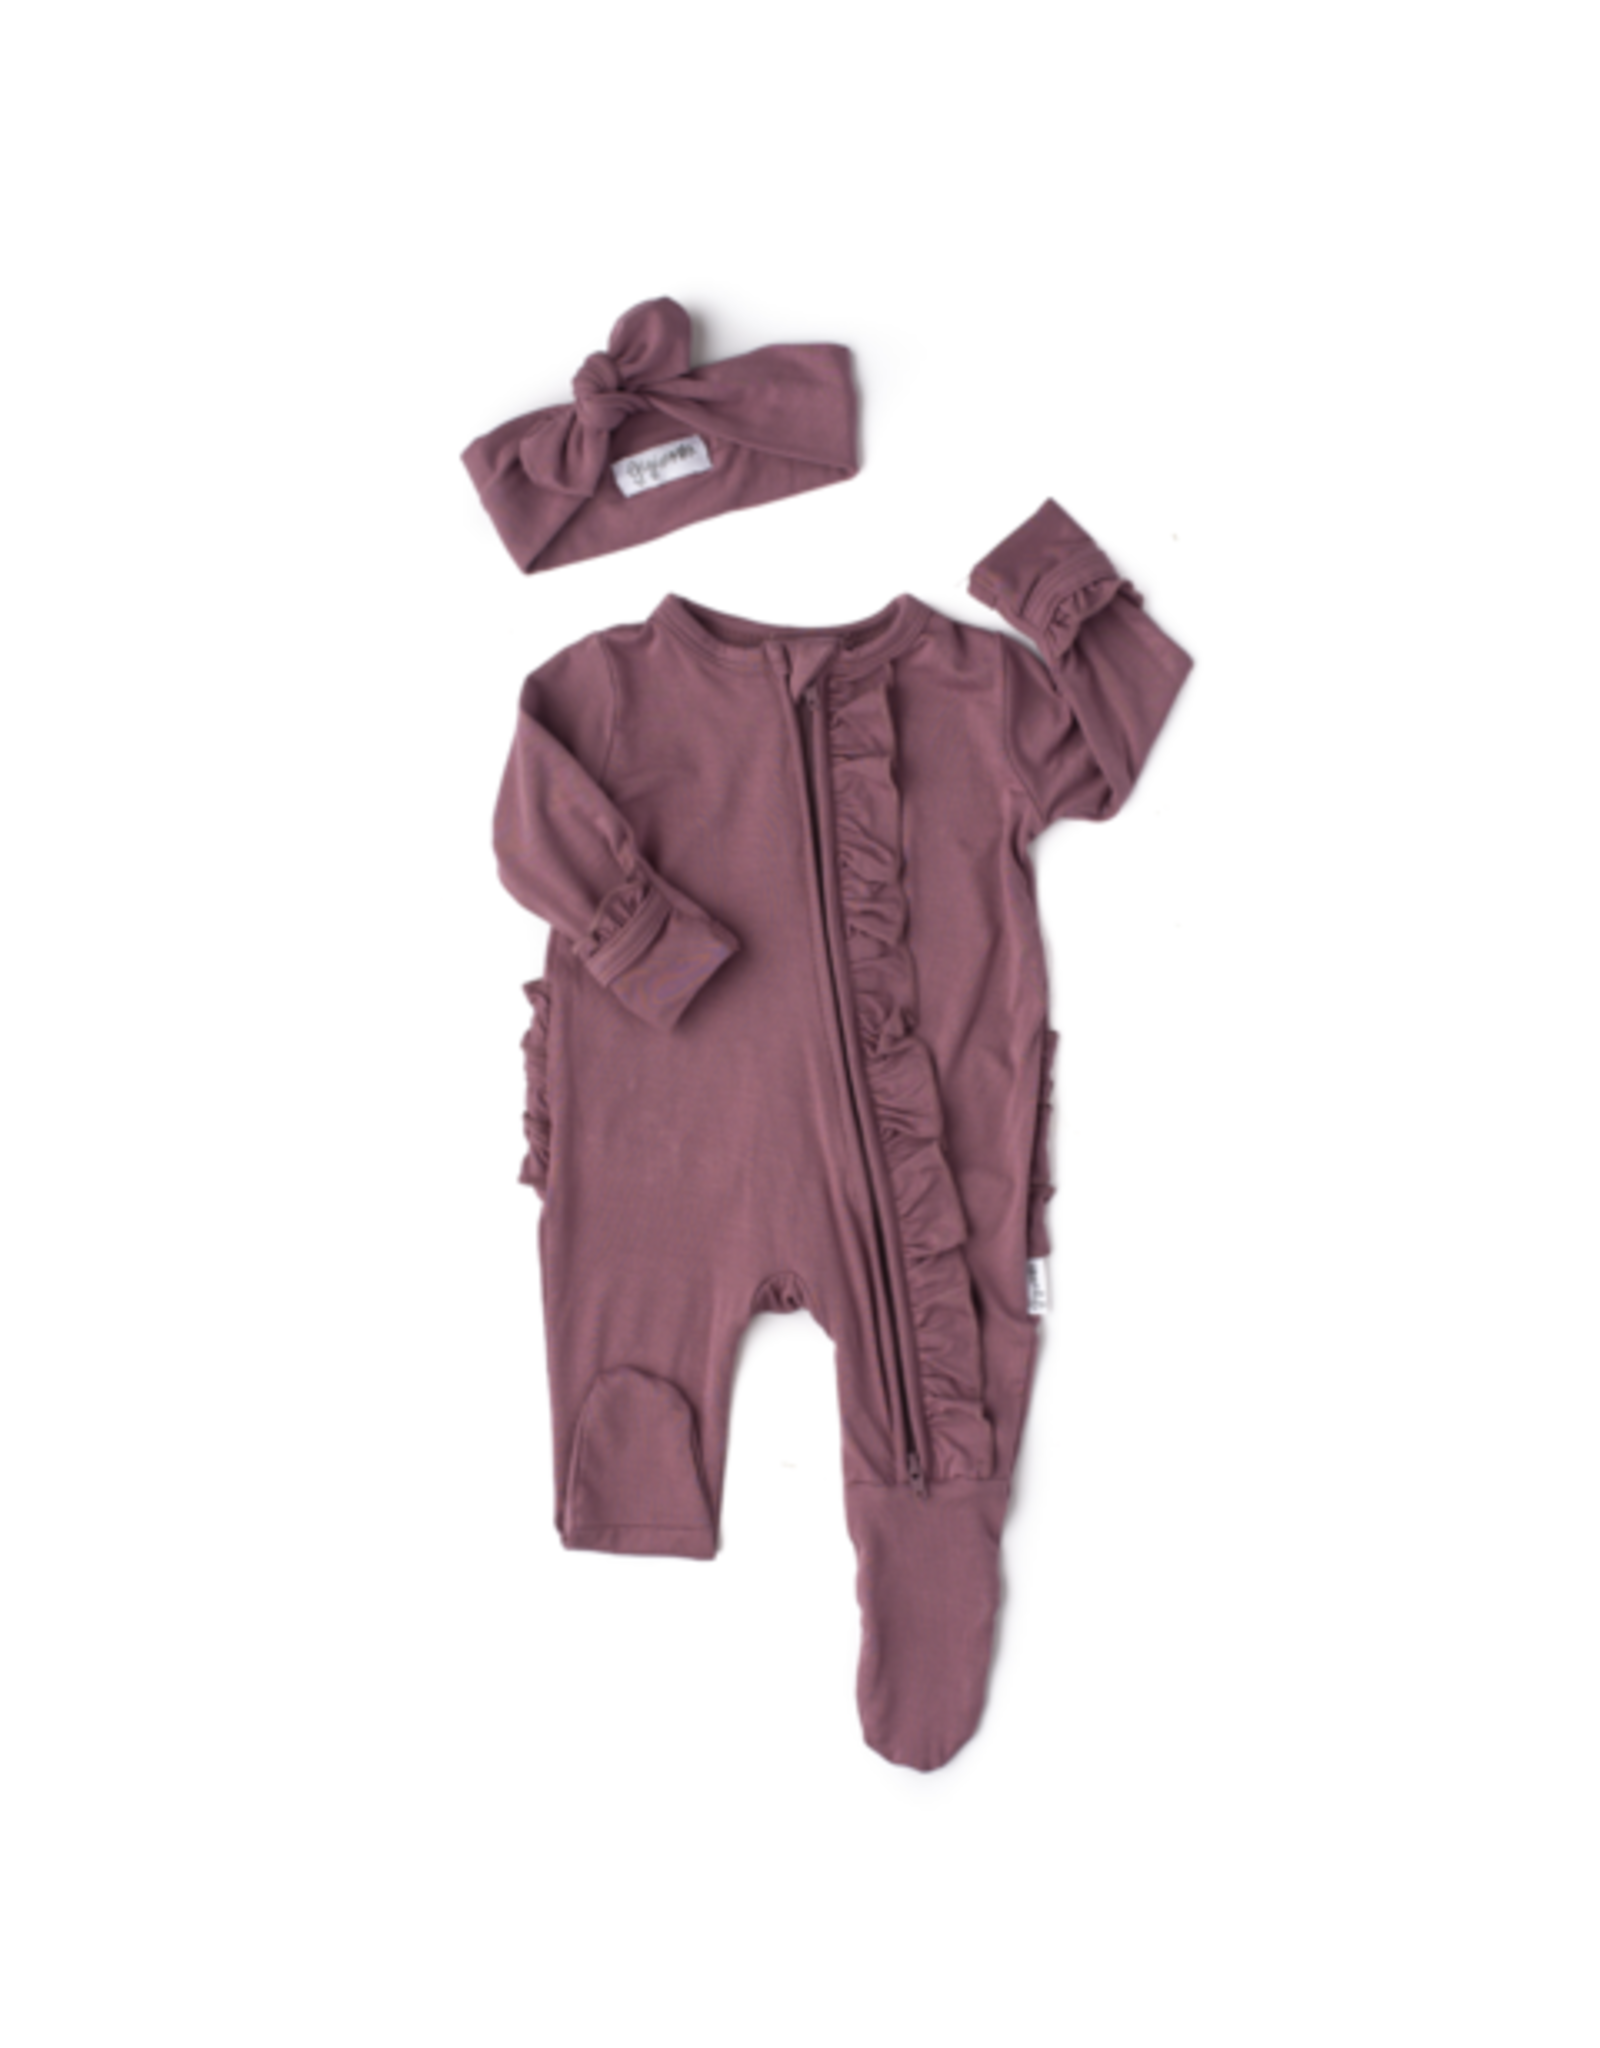 Gigi & Max Gigi & Max- Kate Mauve Newborn Ruffled Footed Zip & Headband Set